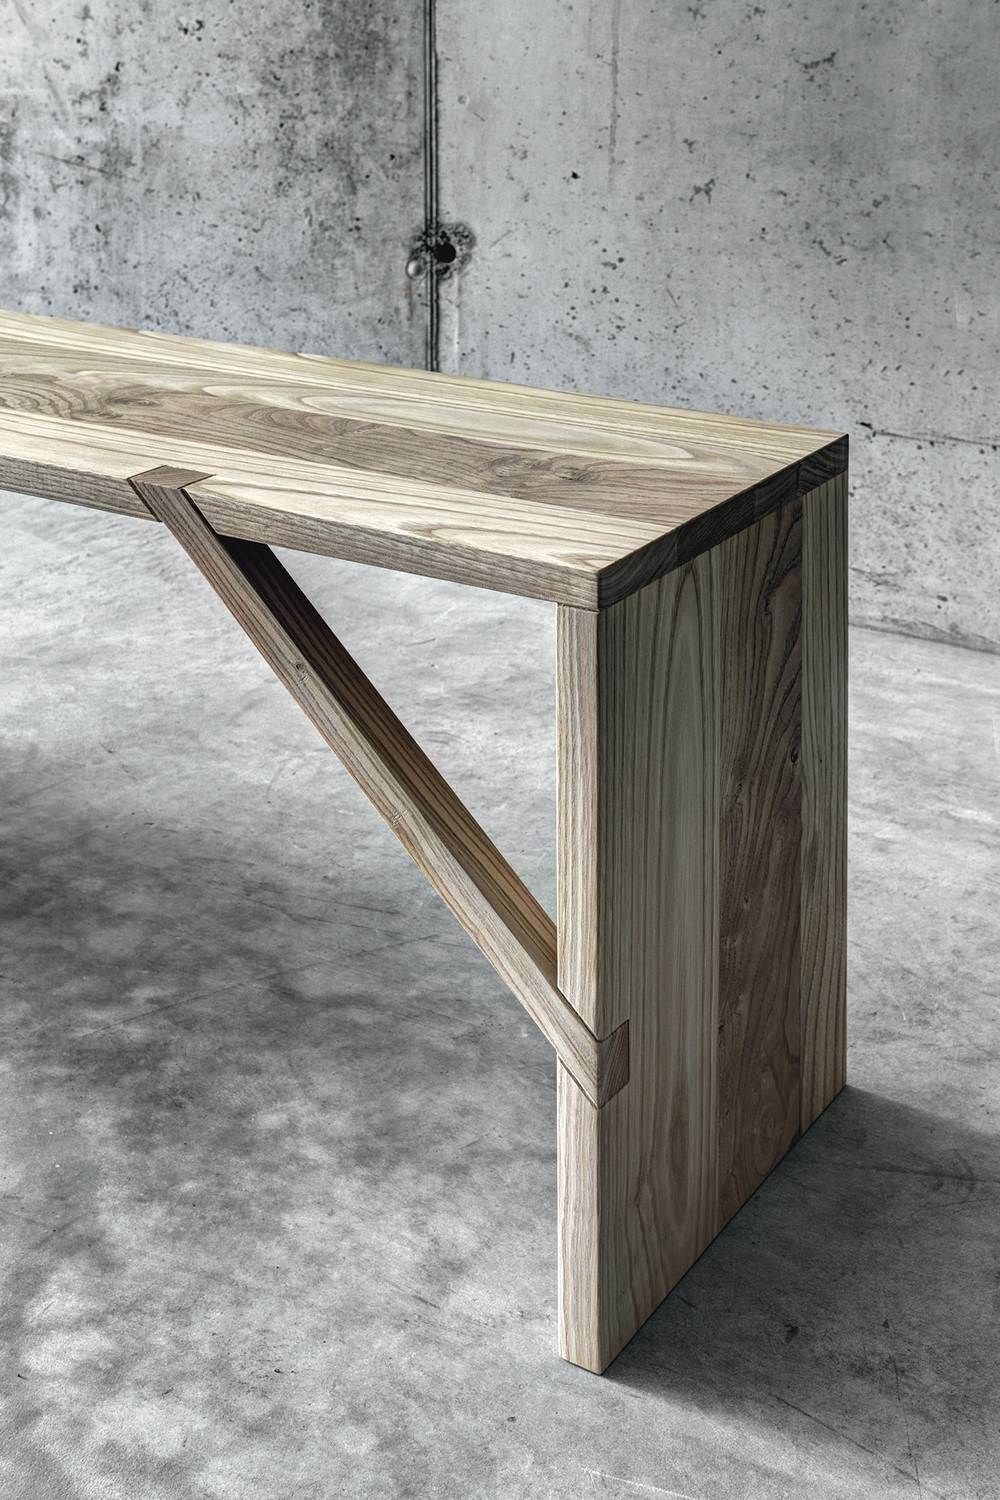 Creative Contemporary Design Inspired By Tradition Tables Benches And Bookshelves By Fioroni At Fuorisalone With Images Wood Joinery Wood Design Furniture Inspiration